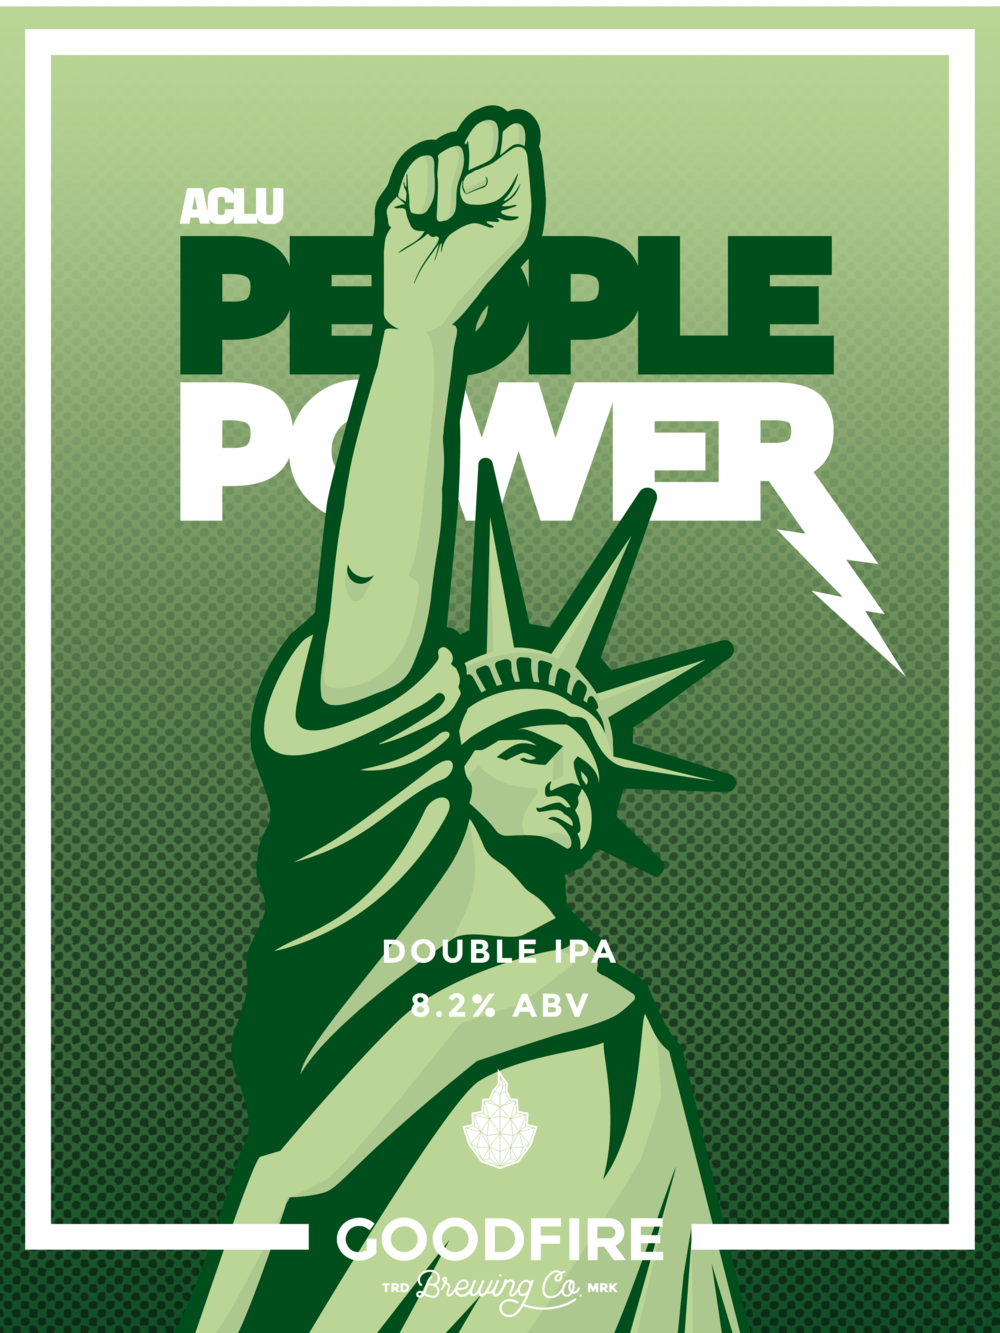 Goodfire People Power Poster-01.png